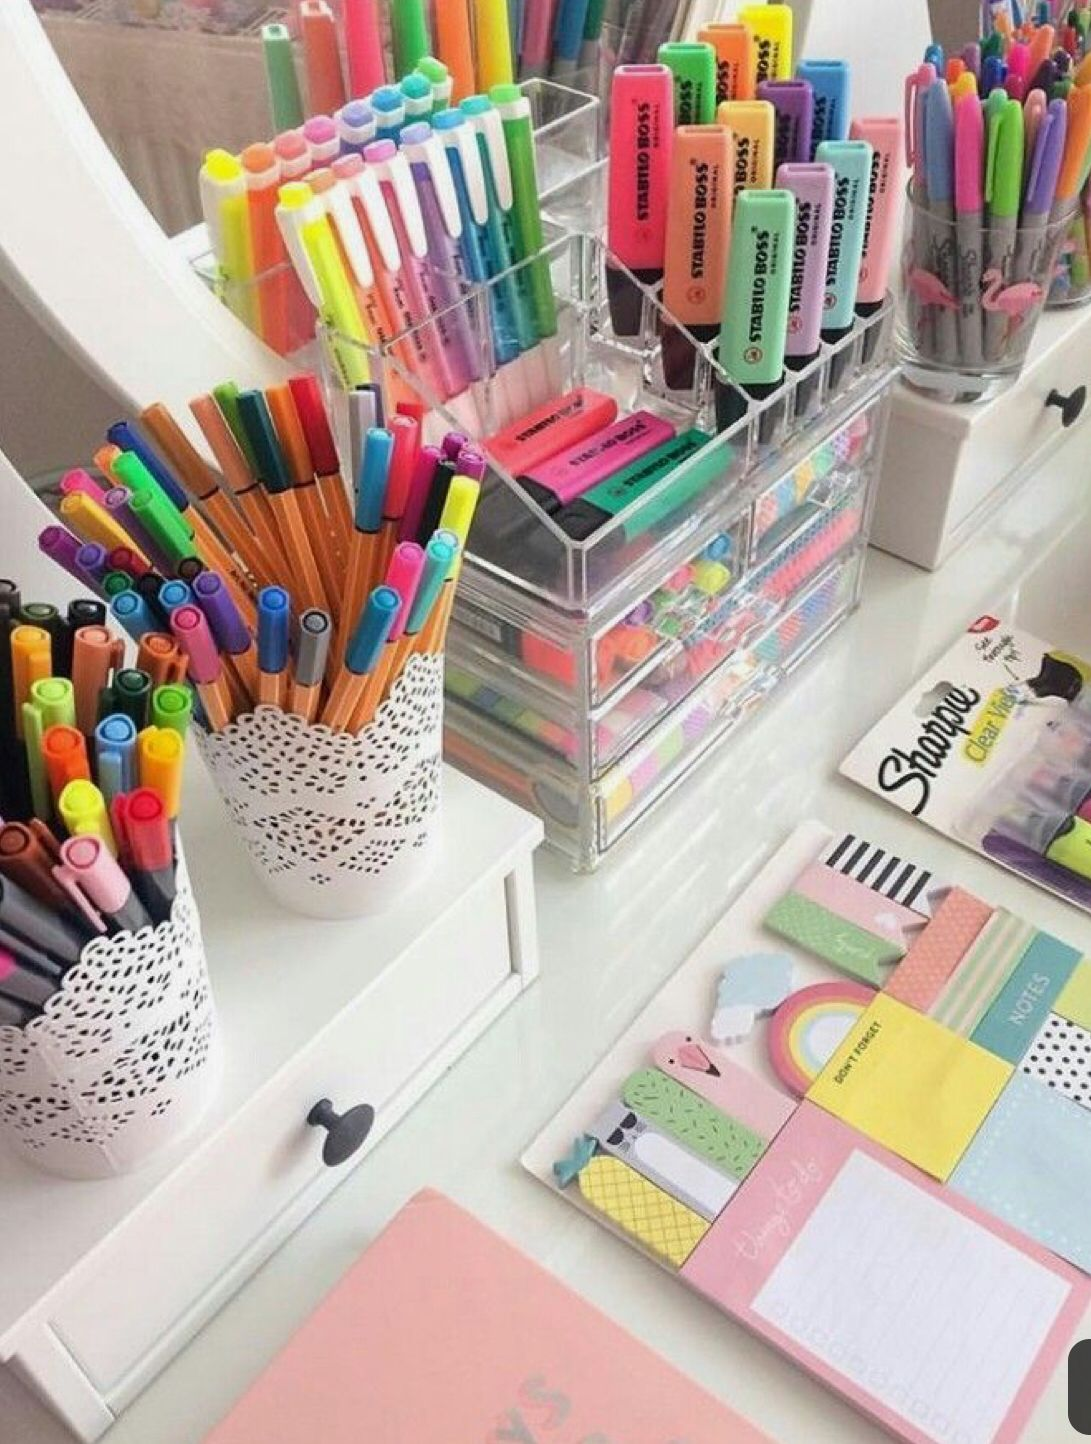 Oh I Like It Study Room Decor Room Organization Bedroom Room Organization